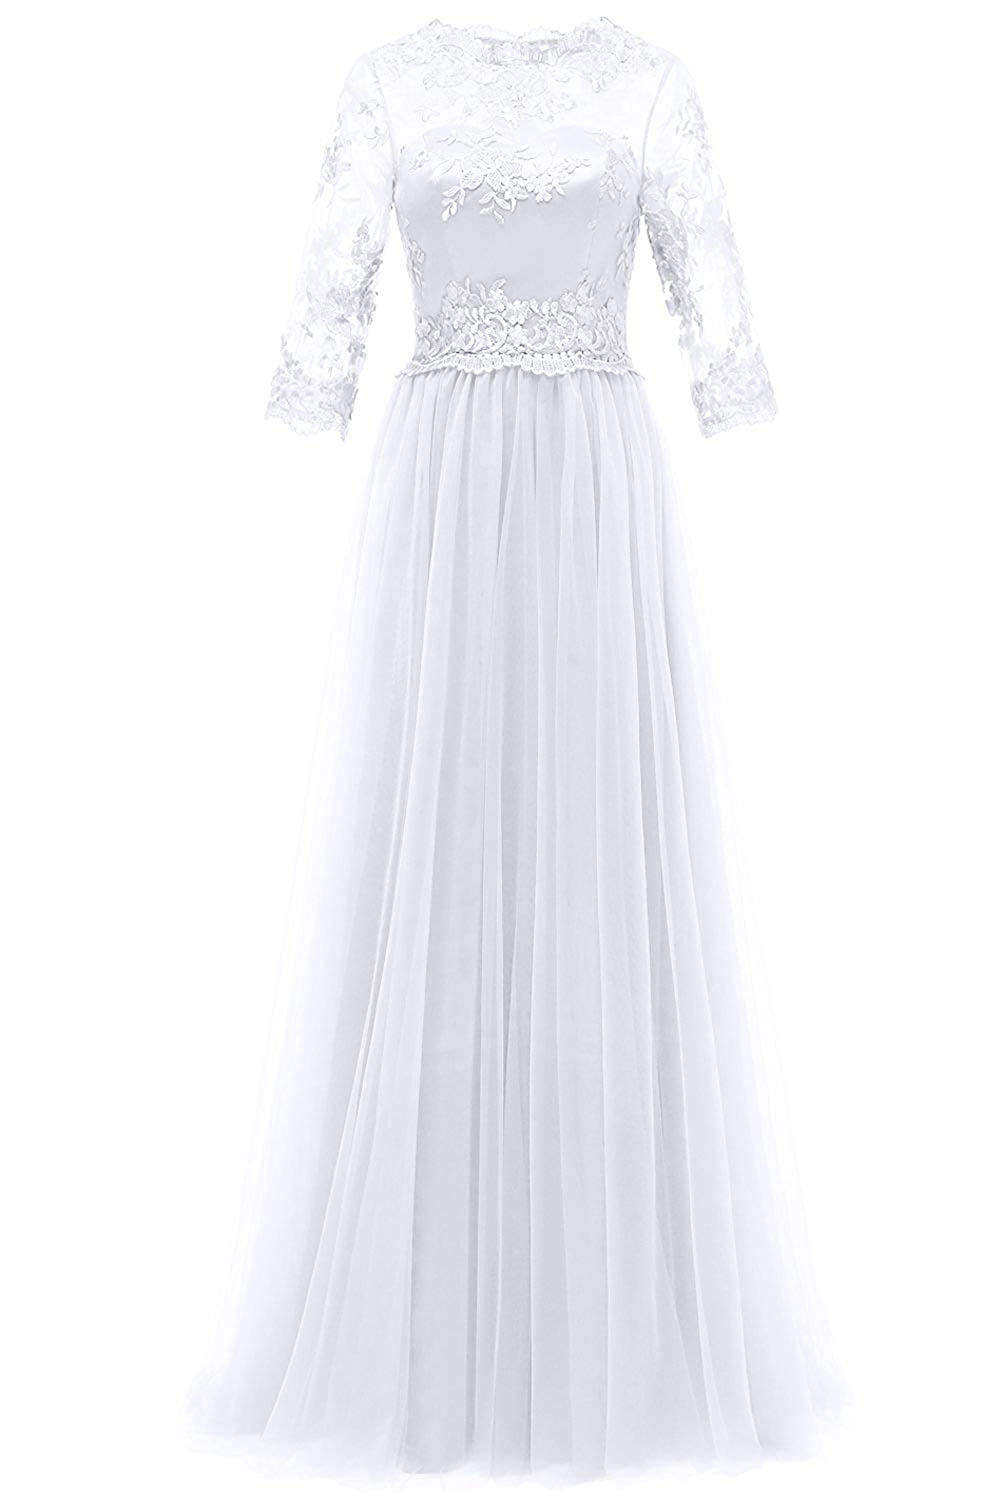 White Evening Dresses Long Sleeve Lace Formal Prom Gowns Mother of The Bride Dress